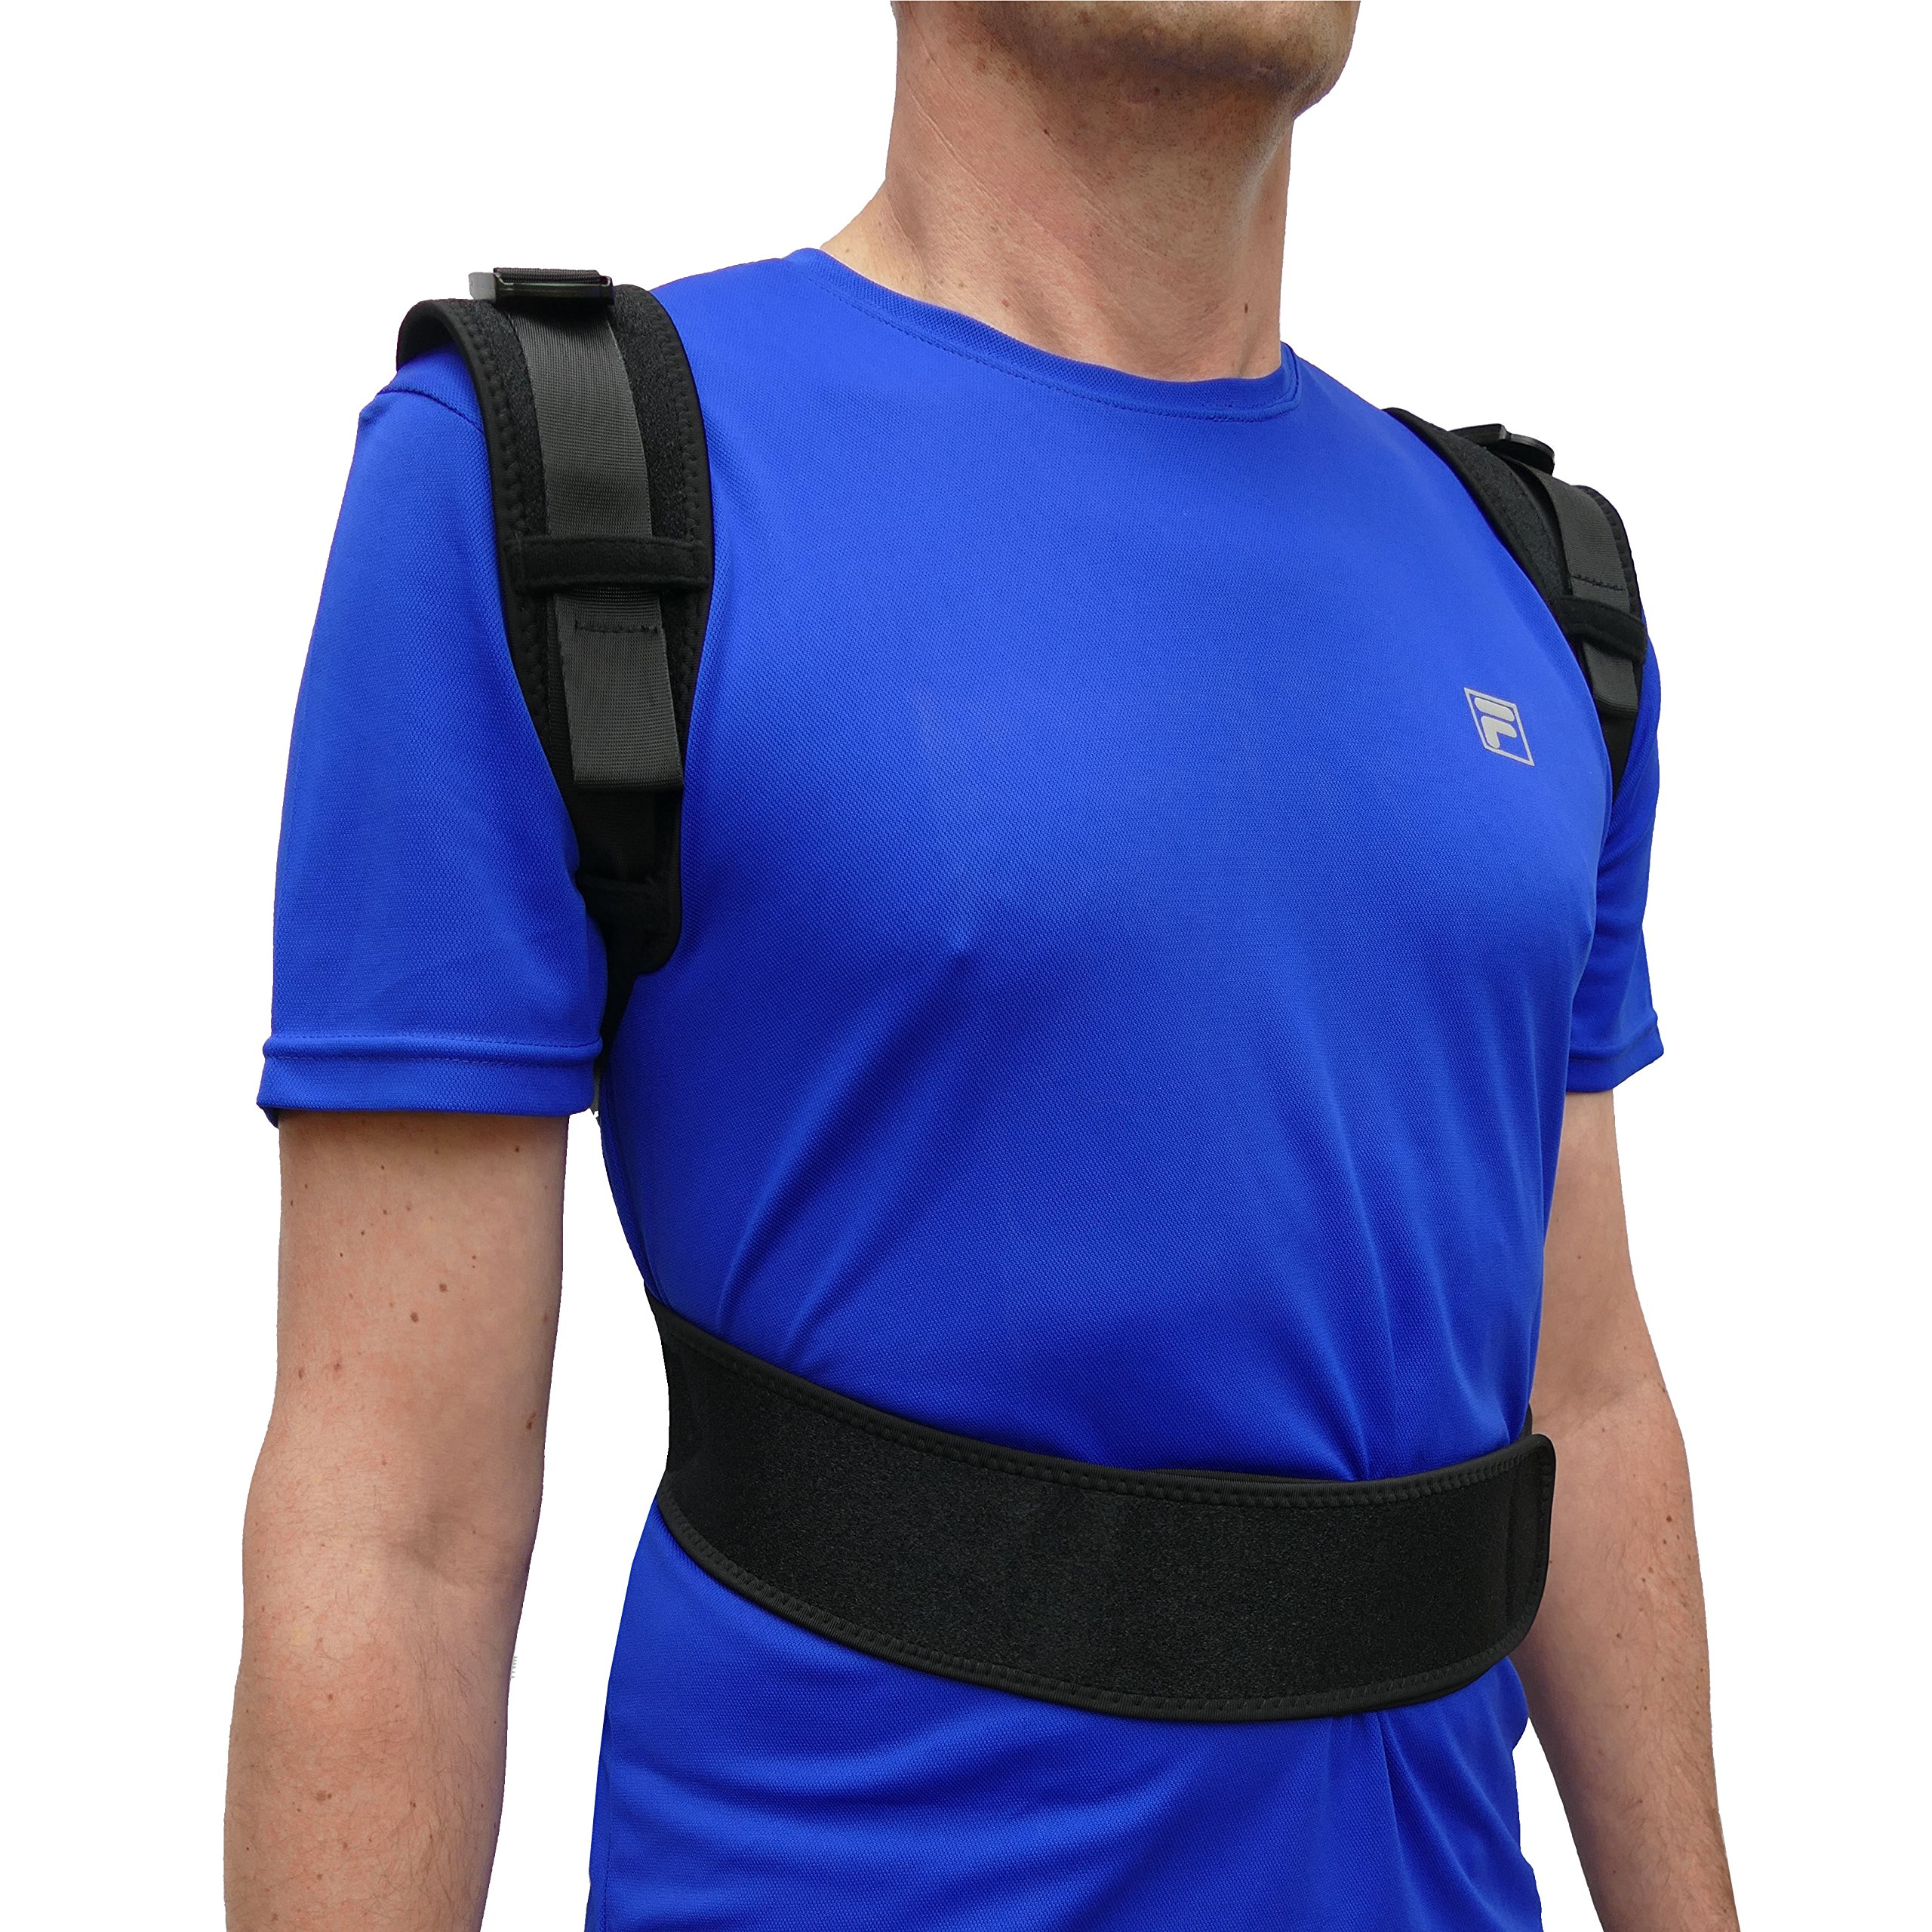 """ComfyMed® Posture Corrector Clavicle Support Brace CM-PB16 Medical Device to Improve Bad Posture, Thoracic Kyphosis, Shoulder Alignment, Upper Back Pain Relief for Men and Women (LGE (41""""-47"""" Chest))"""